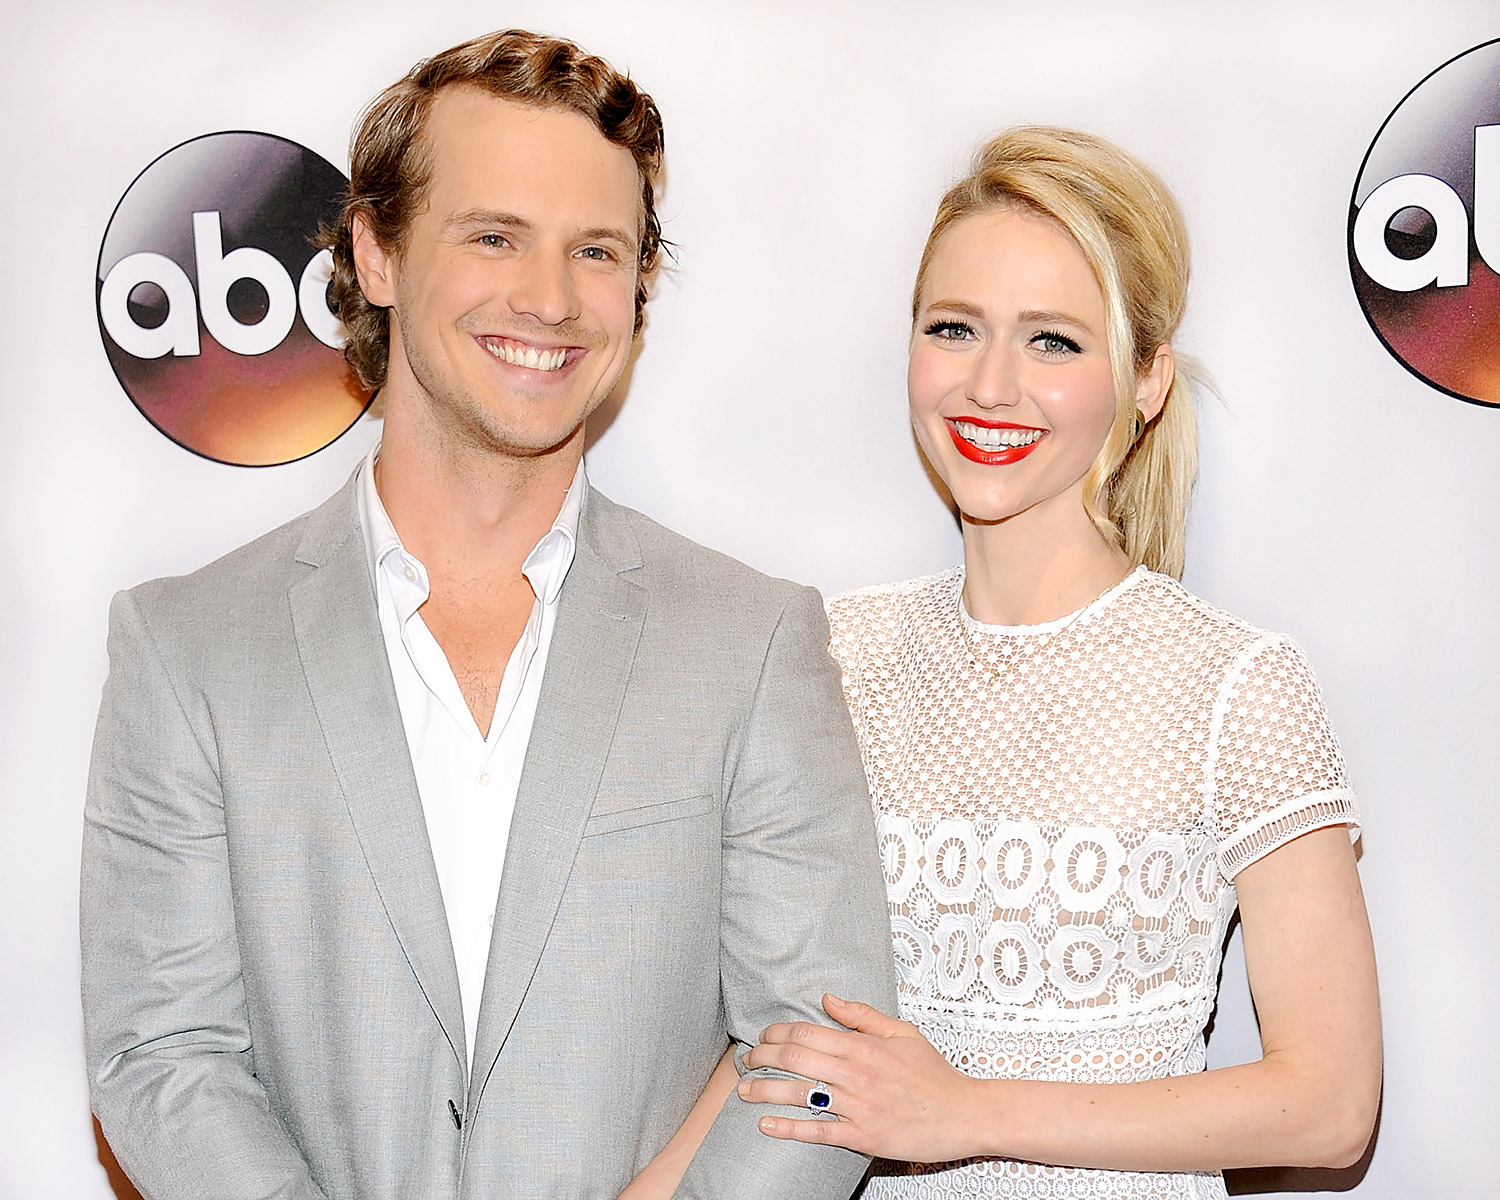 UnREAL costars Freddie Stroma and Johanna Braddy engaged